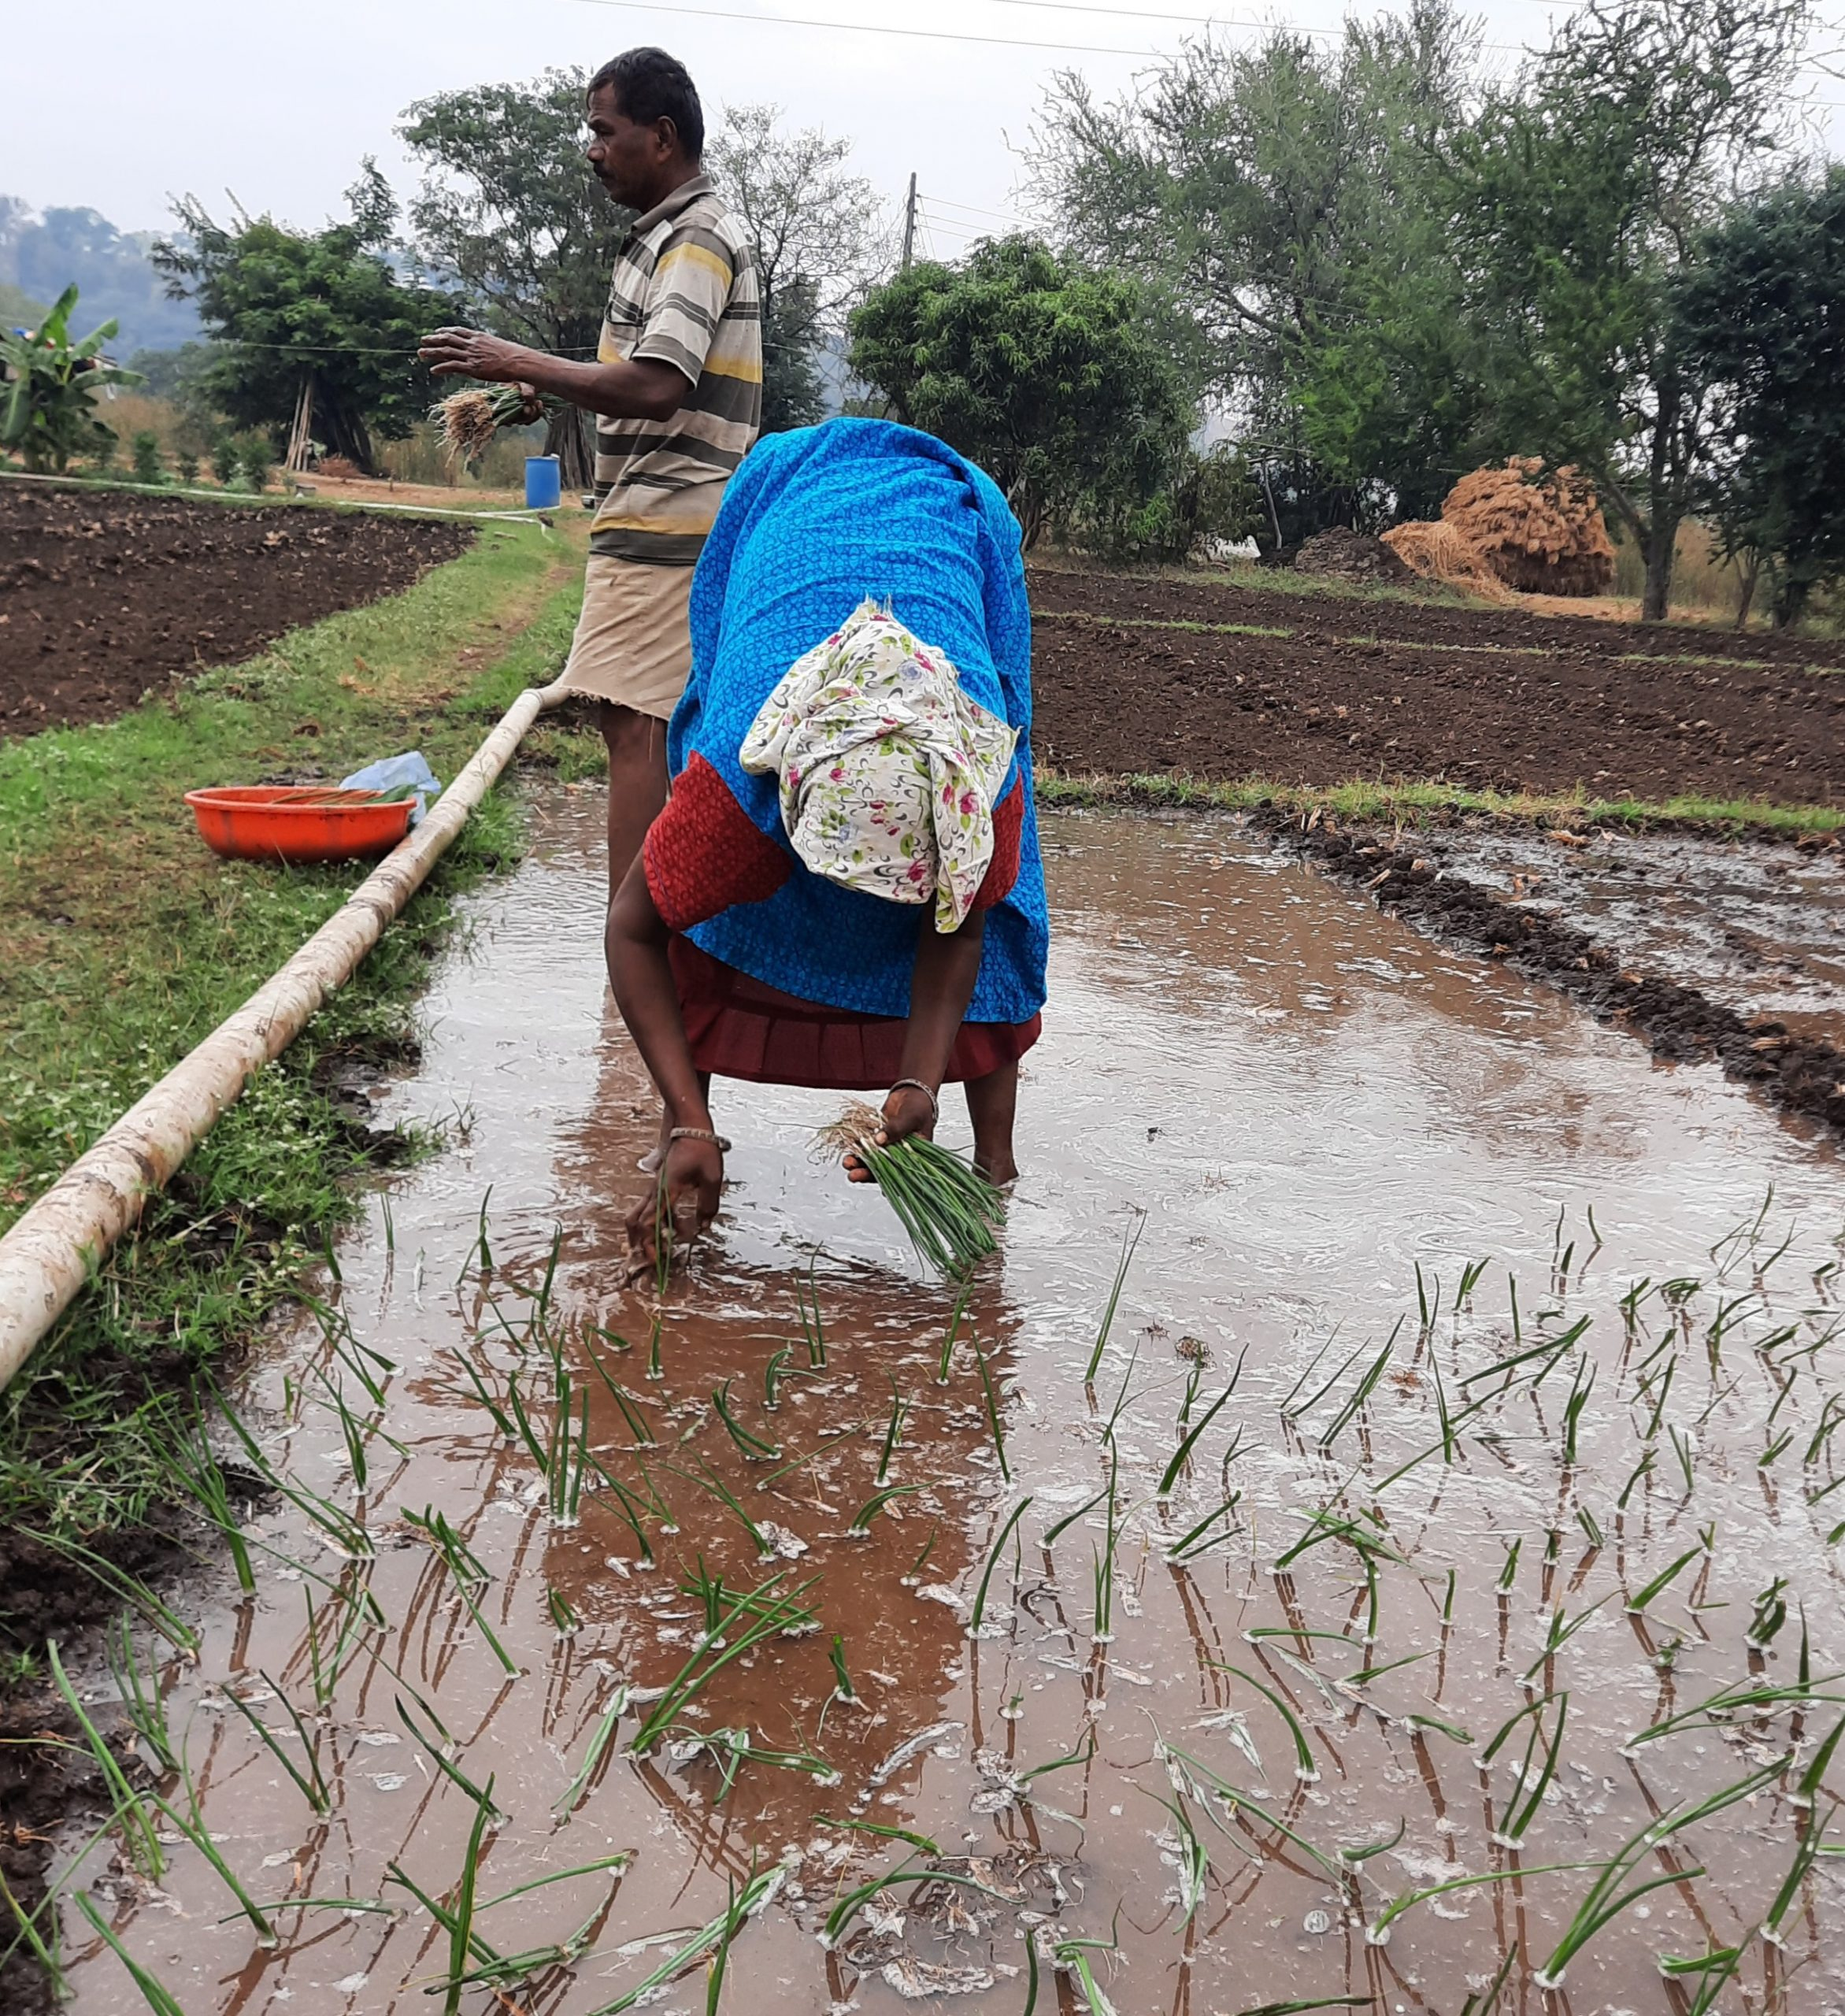 Farmers sowing onion plants